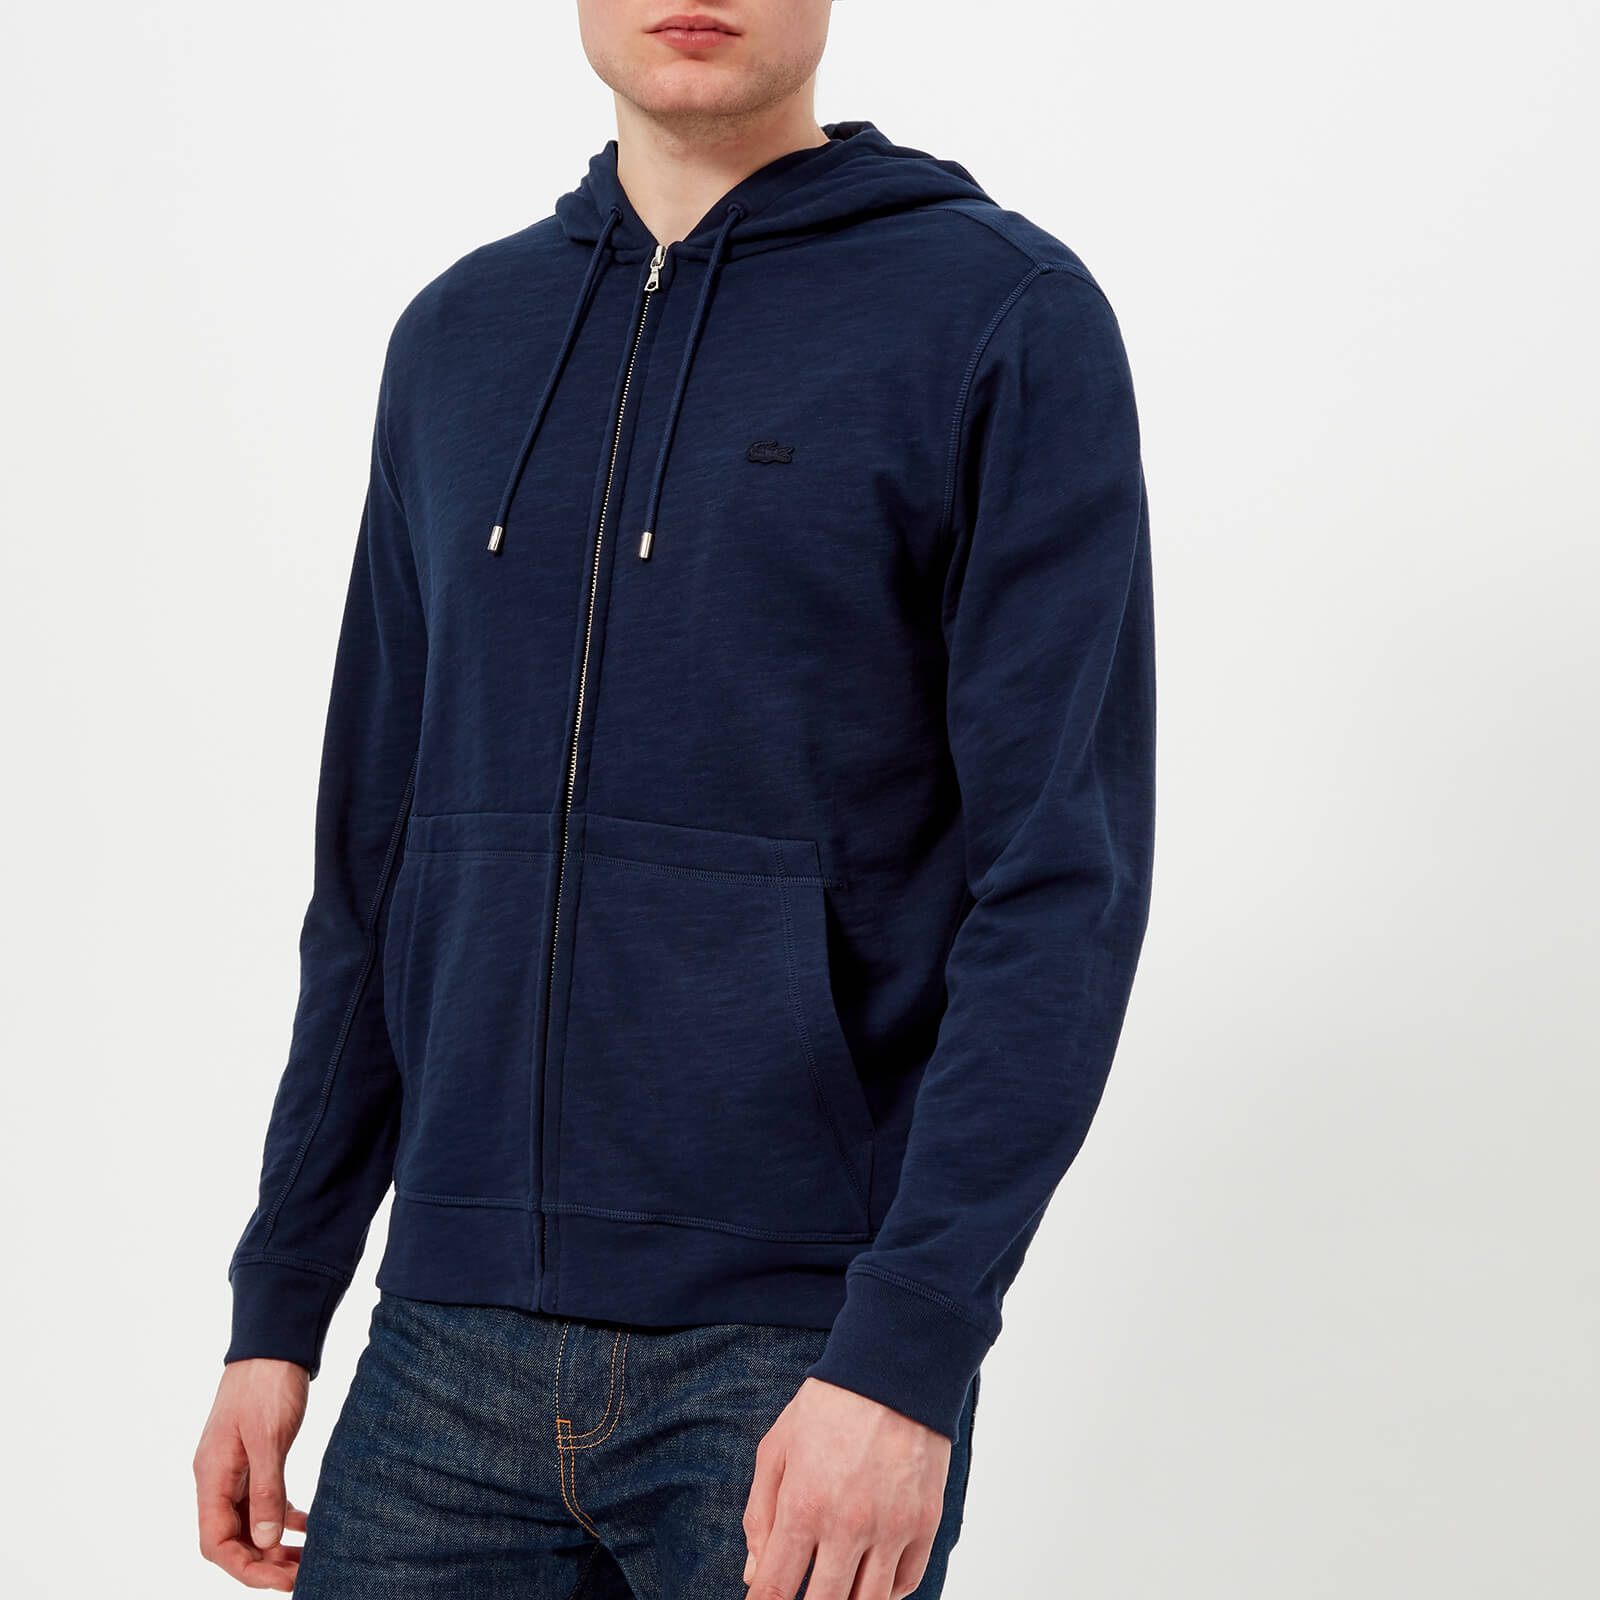 58e4977f94fd Lacoste Men s Zipped Hoody - Navy Blue - Free UK Delivery over £50